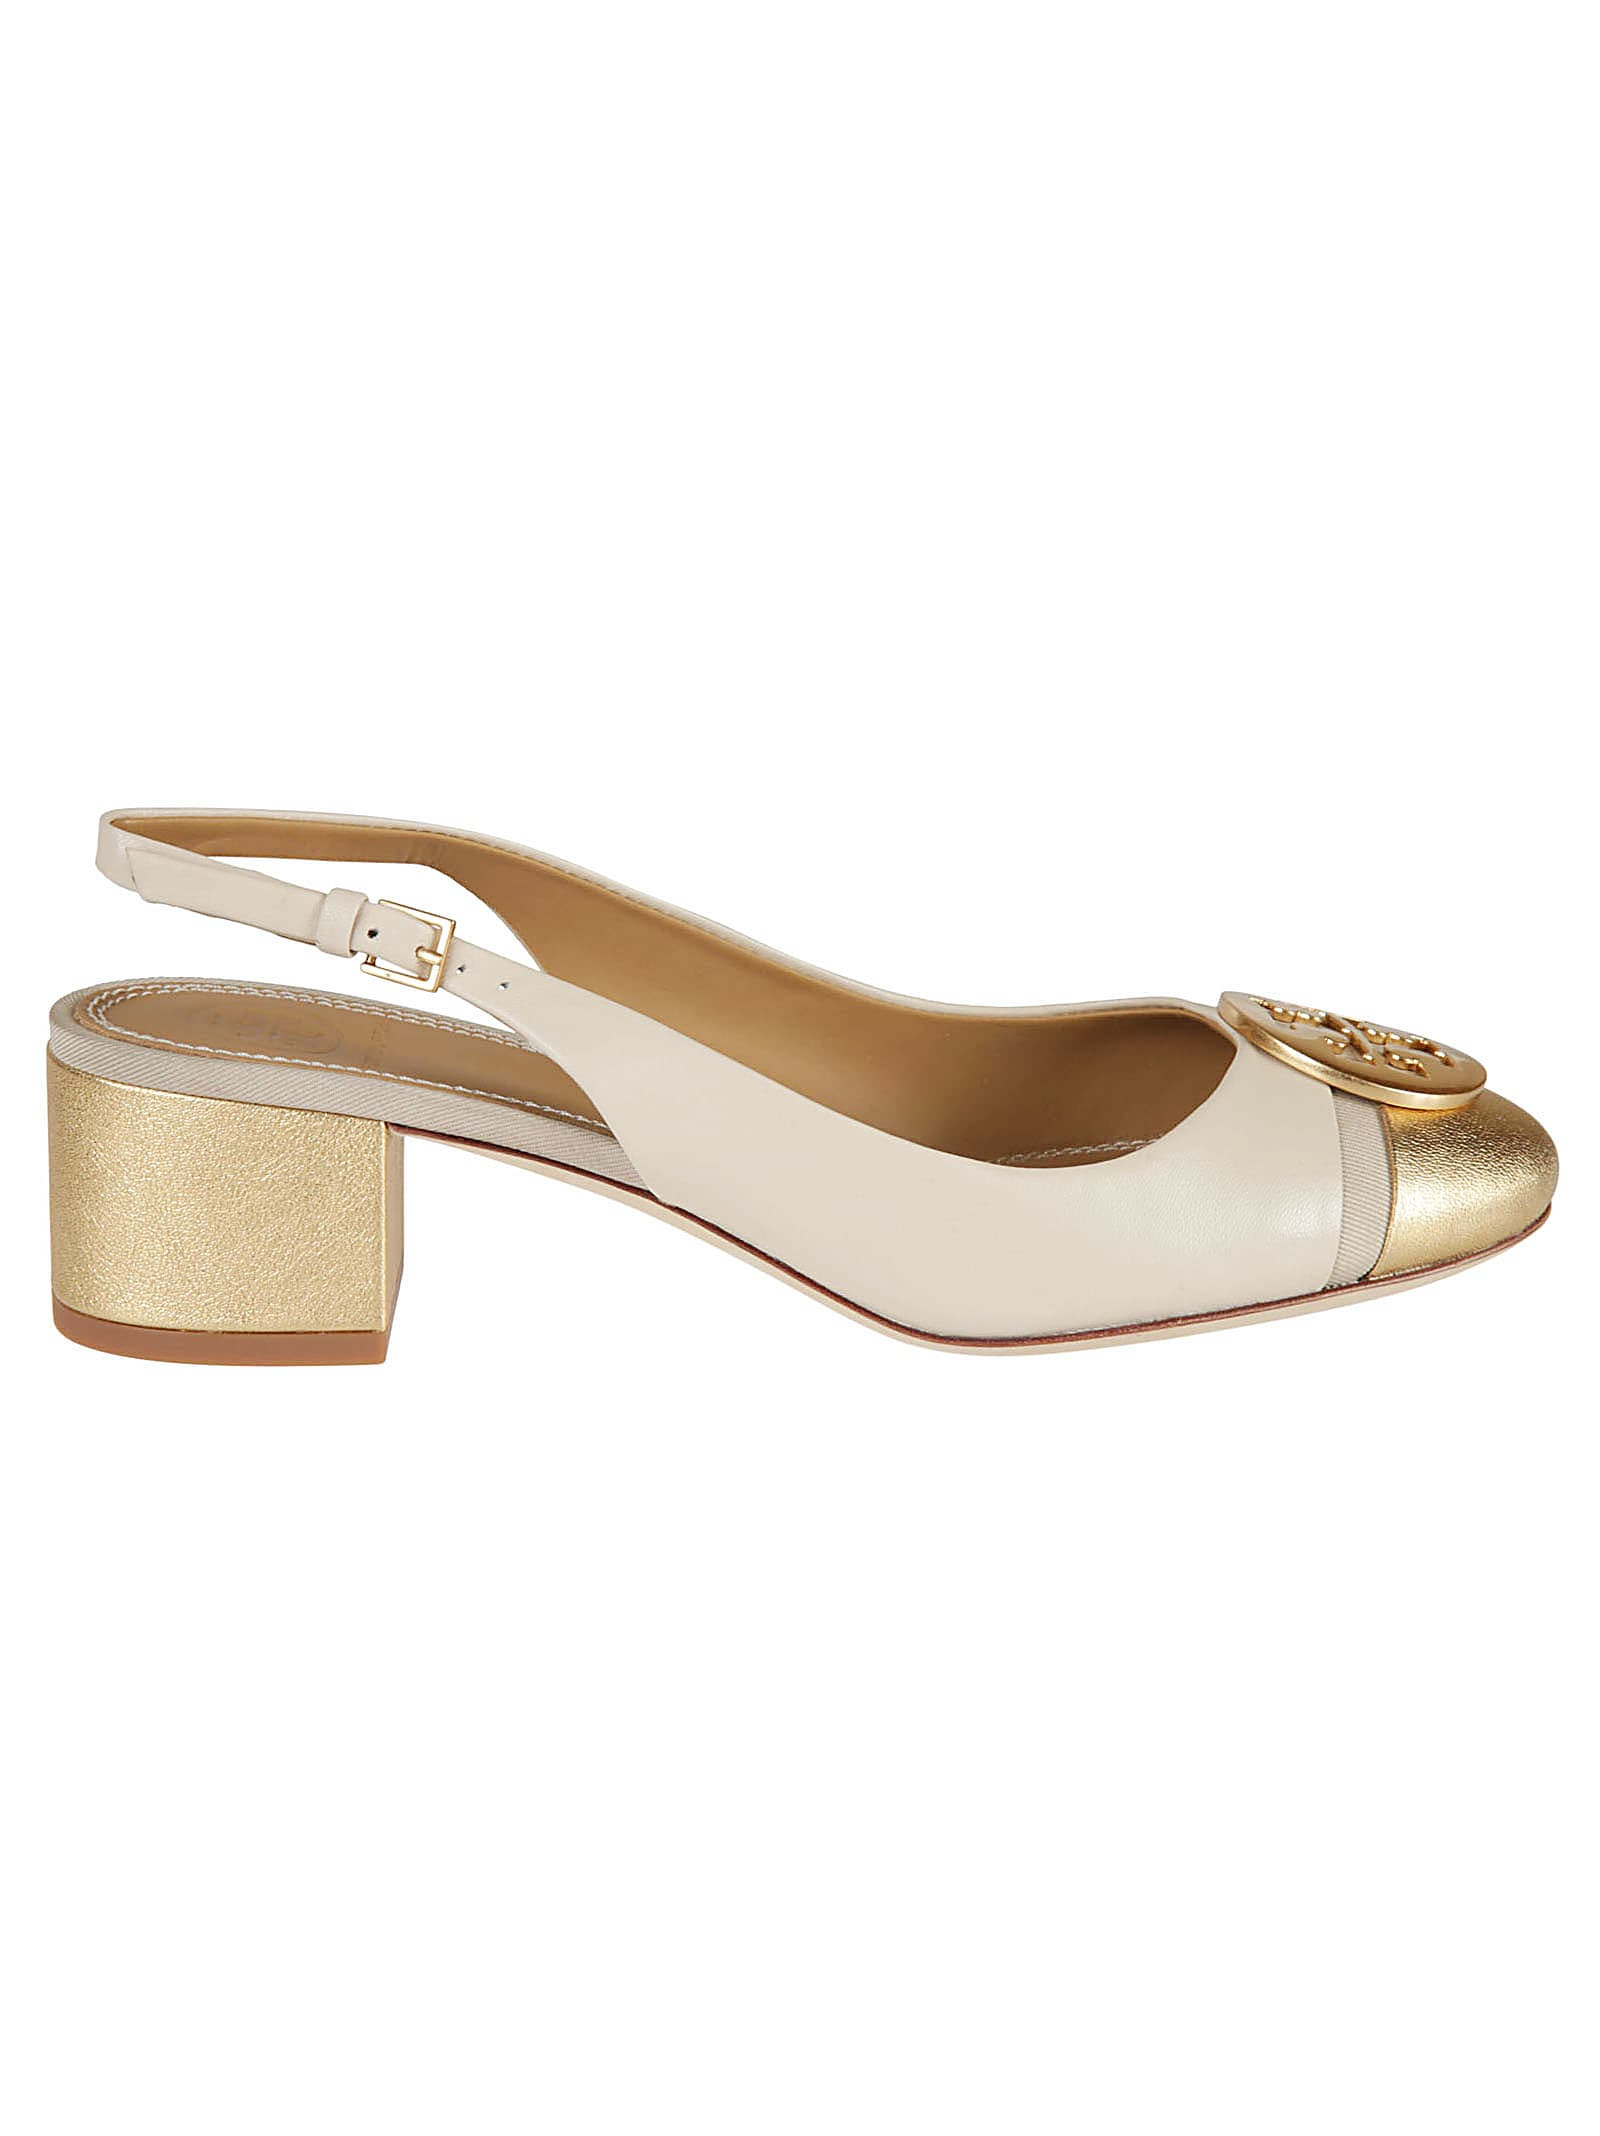 Tory Burch Minnie Cap-toe Slingback Pumps